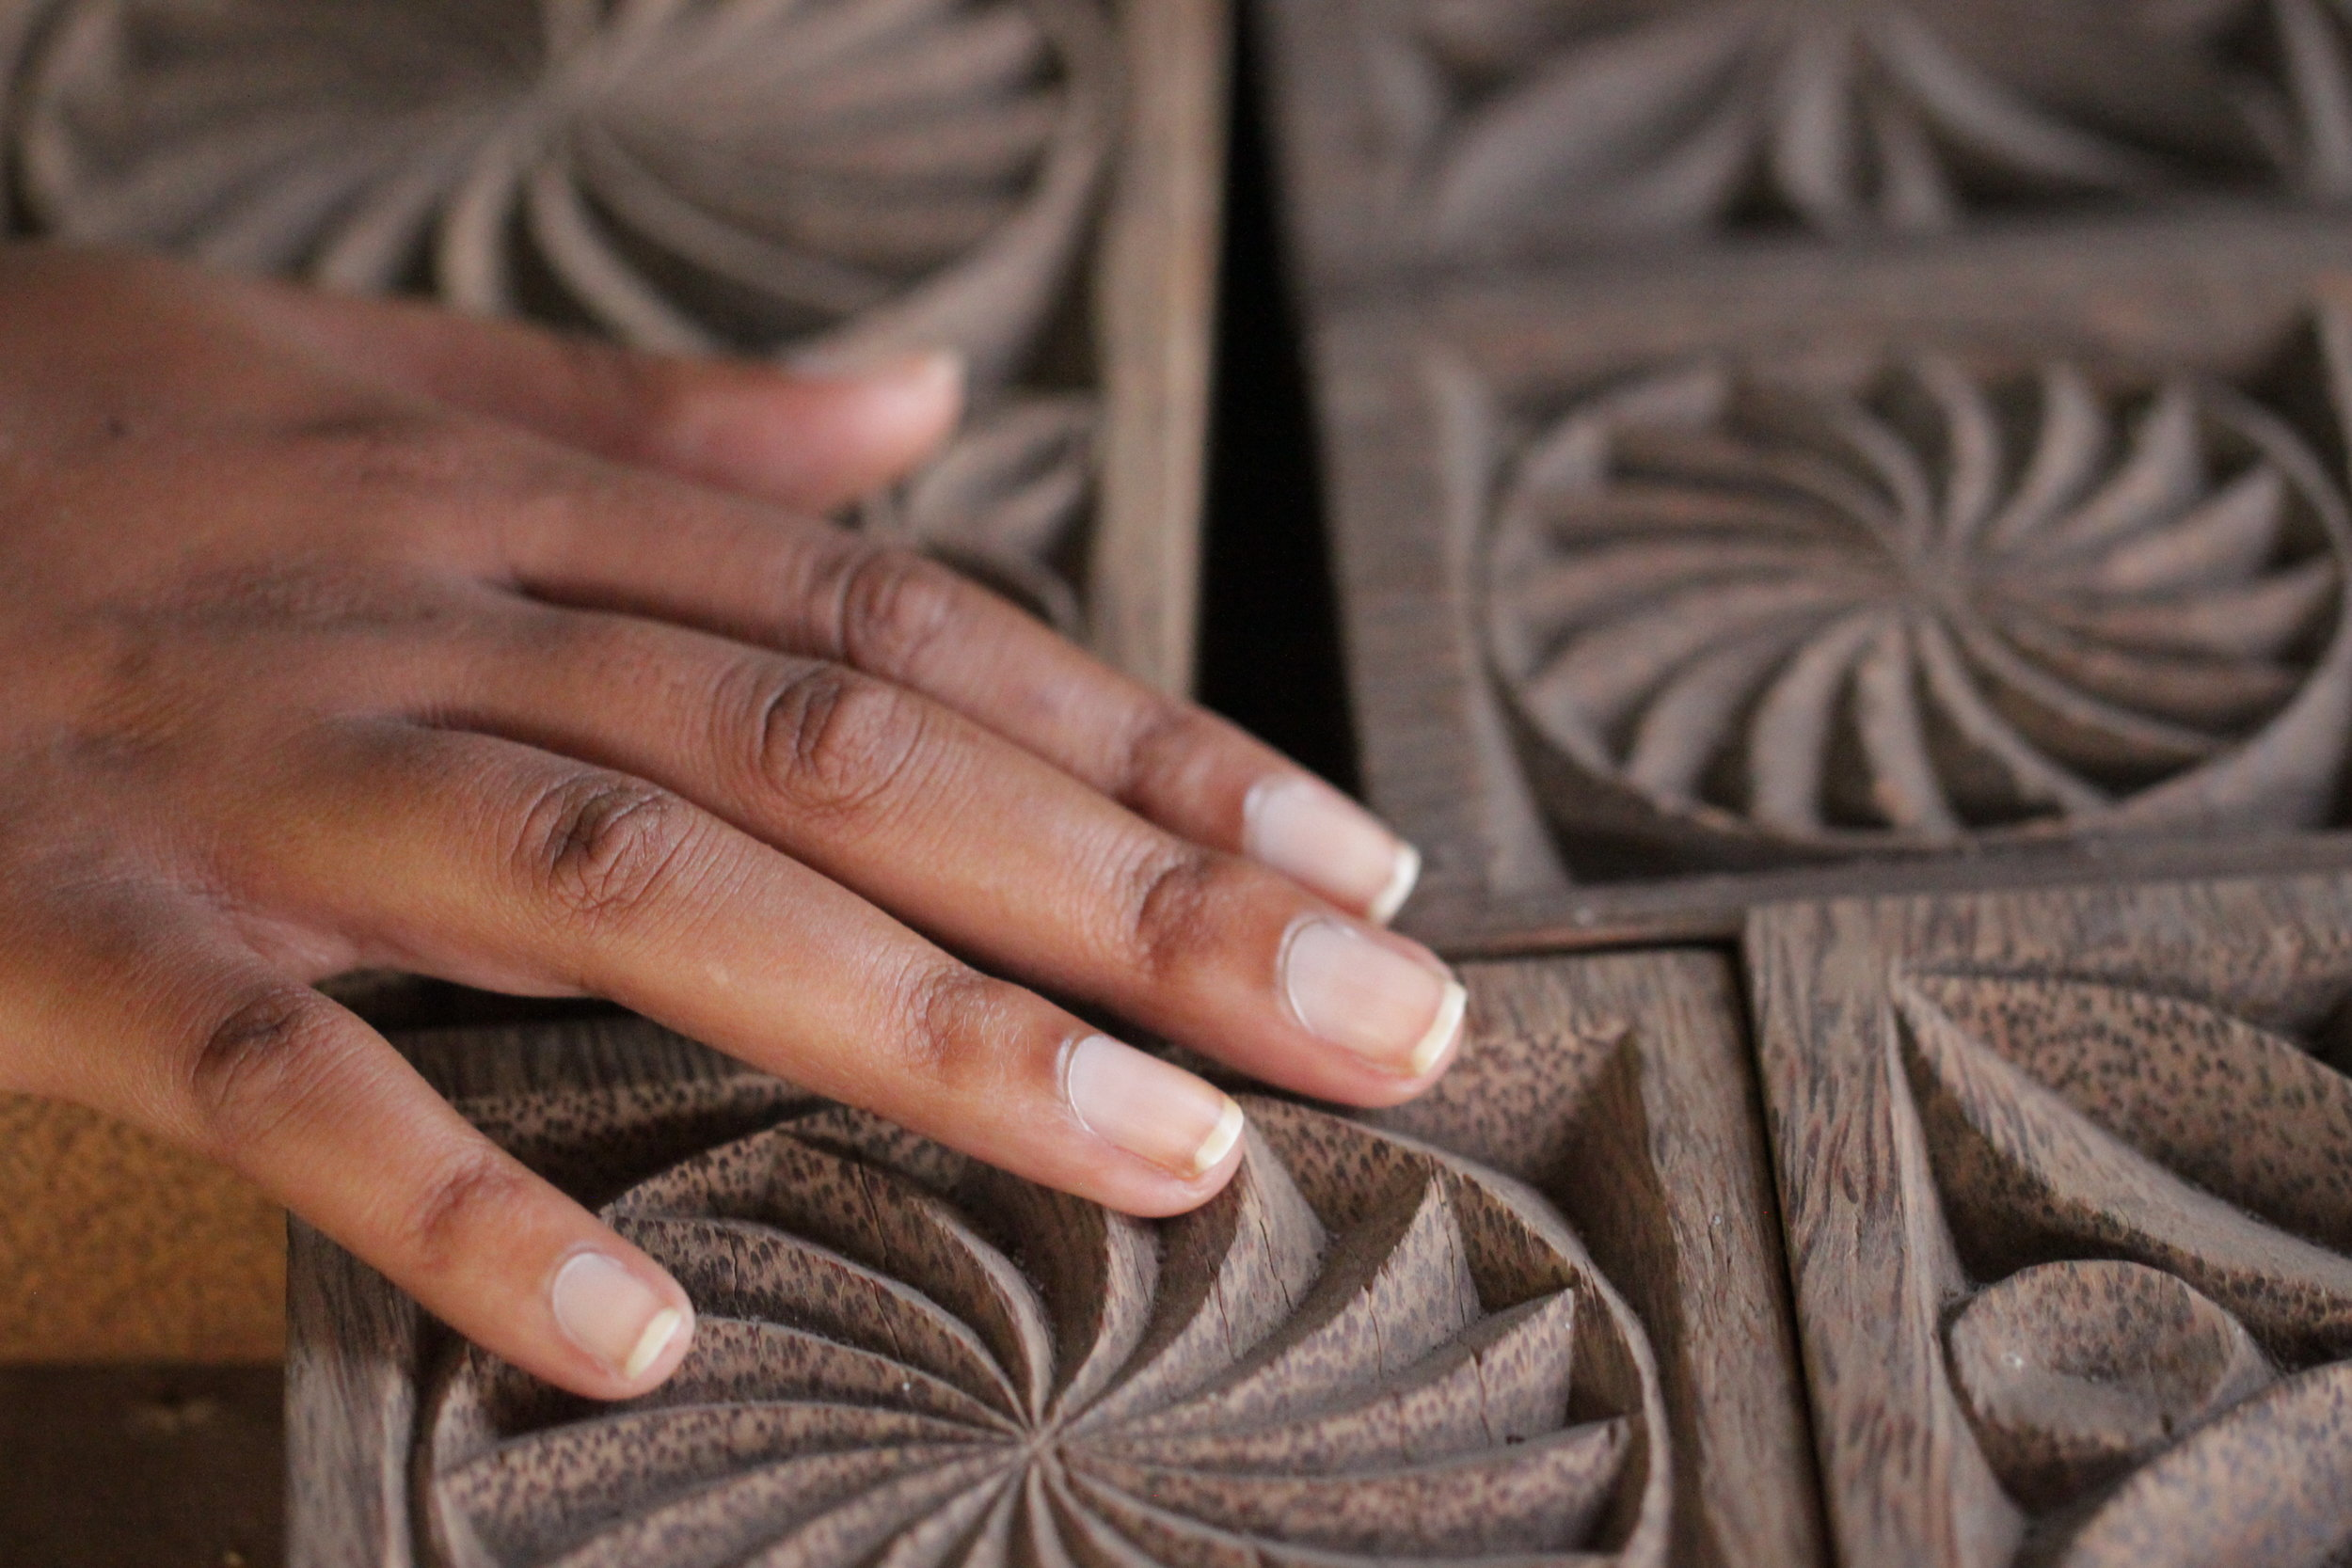 The intricate inlay work done by highly skilled artisans at the Mezimbite Forest Centre.